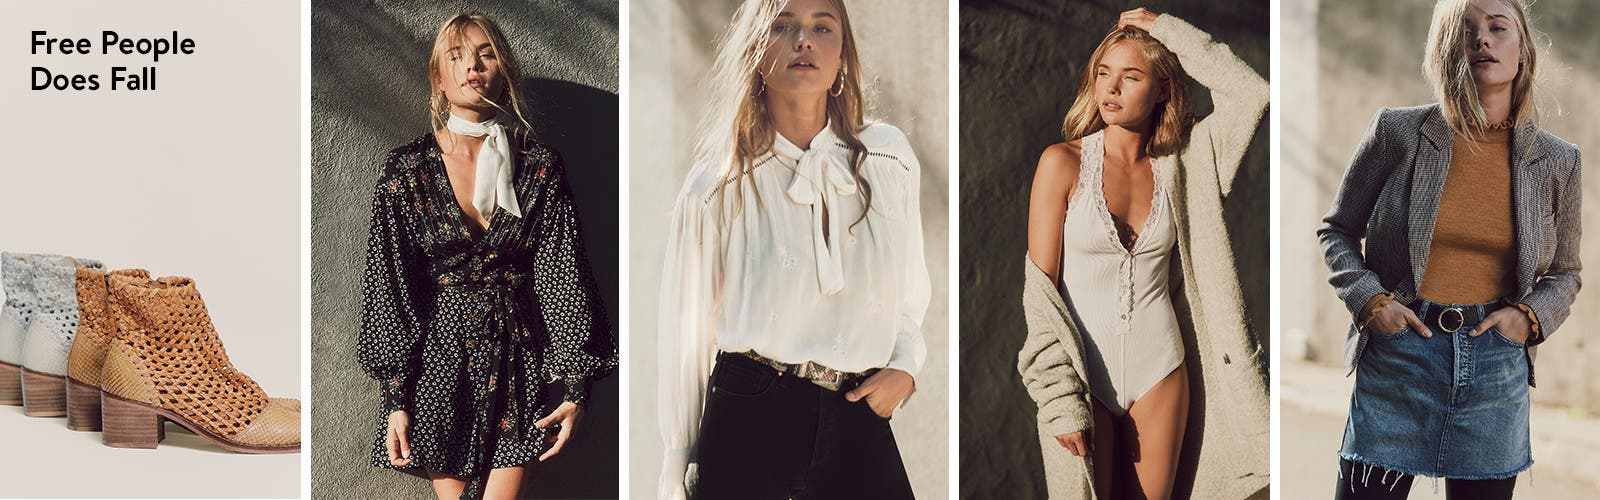 Free People does fall.